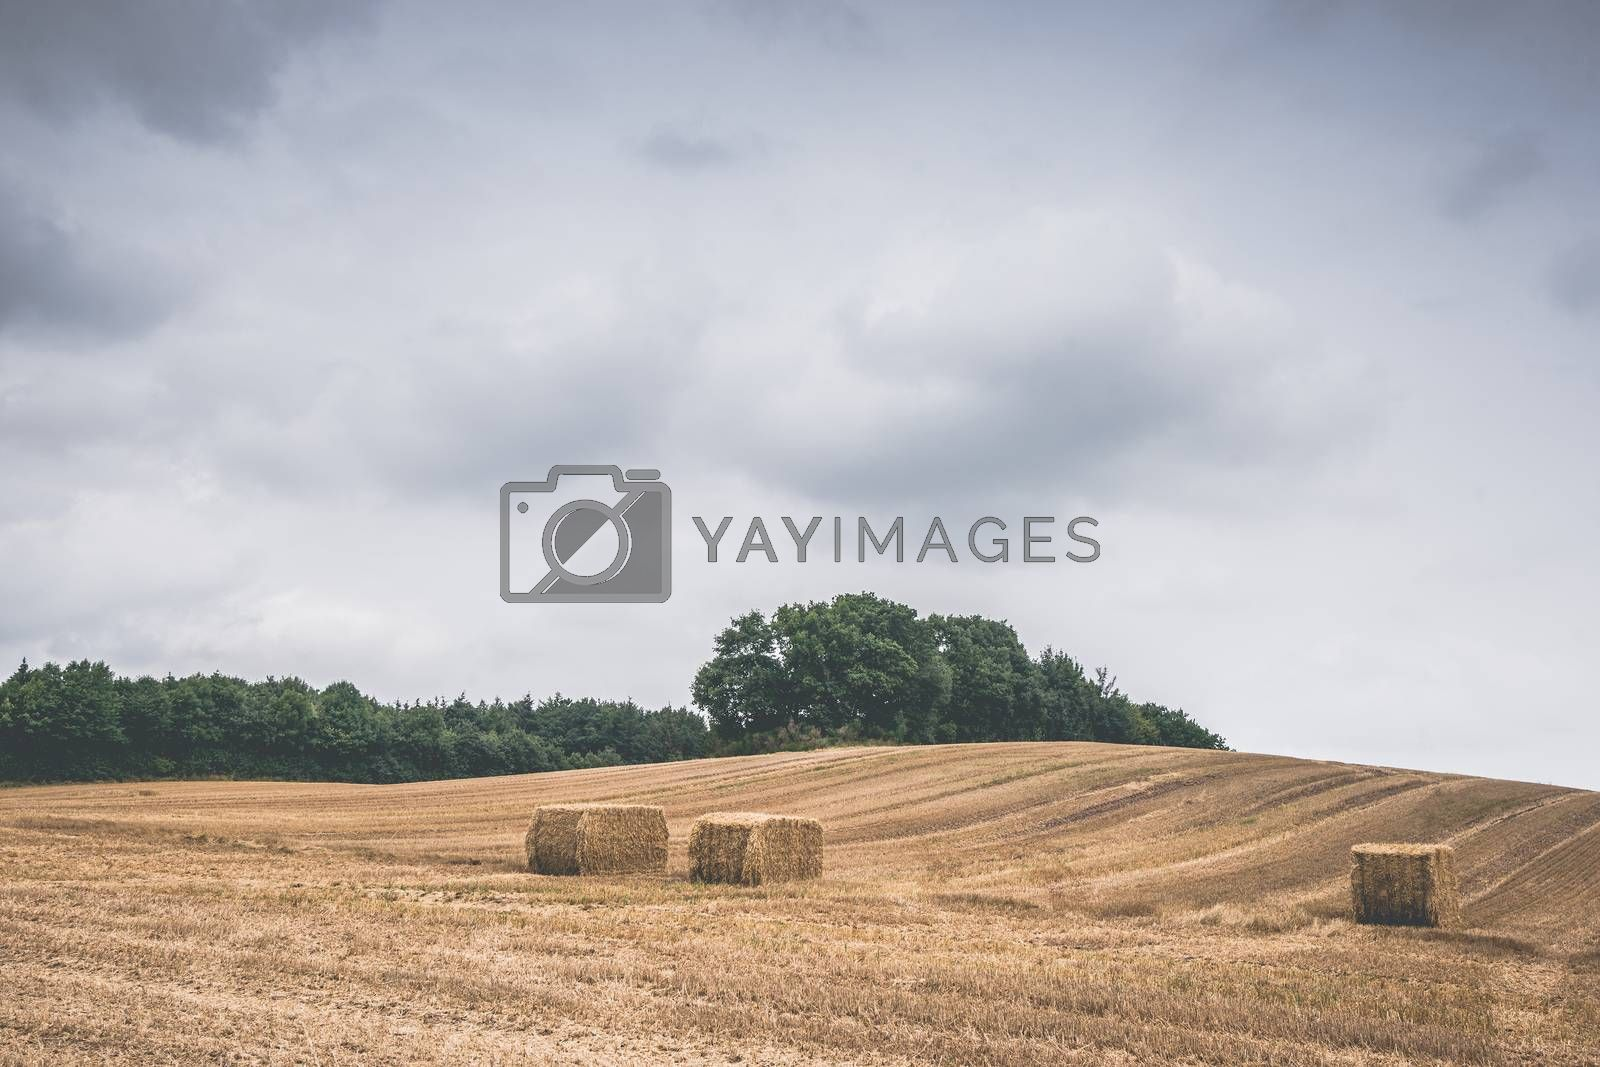 Countryside landscape with hay bales on a harvested field in cloudy weather